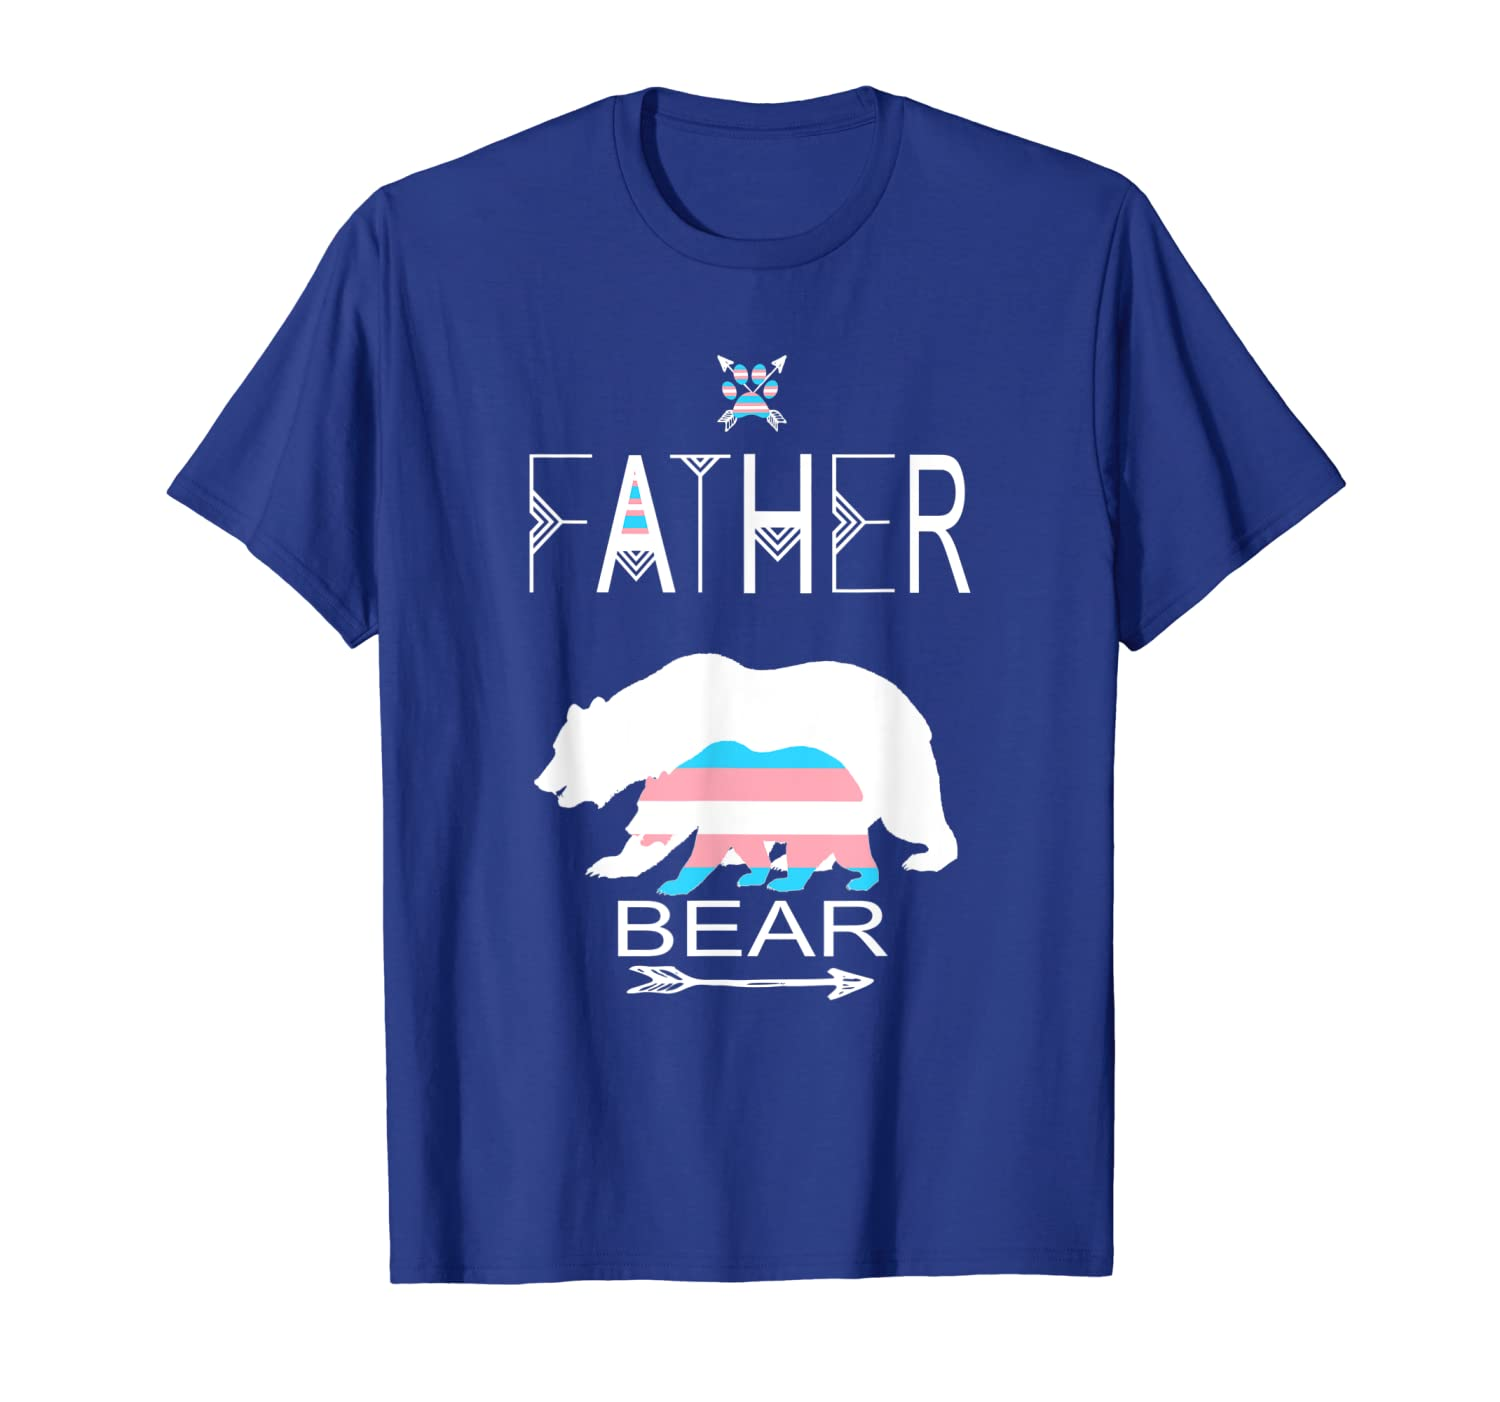 Transgender Father Bear For Dads Of A Trans Child Cool T-Shirt Unisex Tshirt